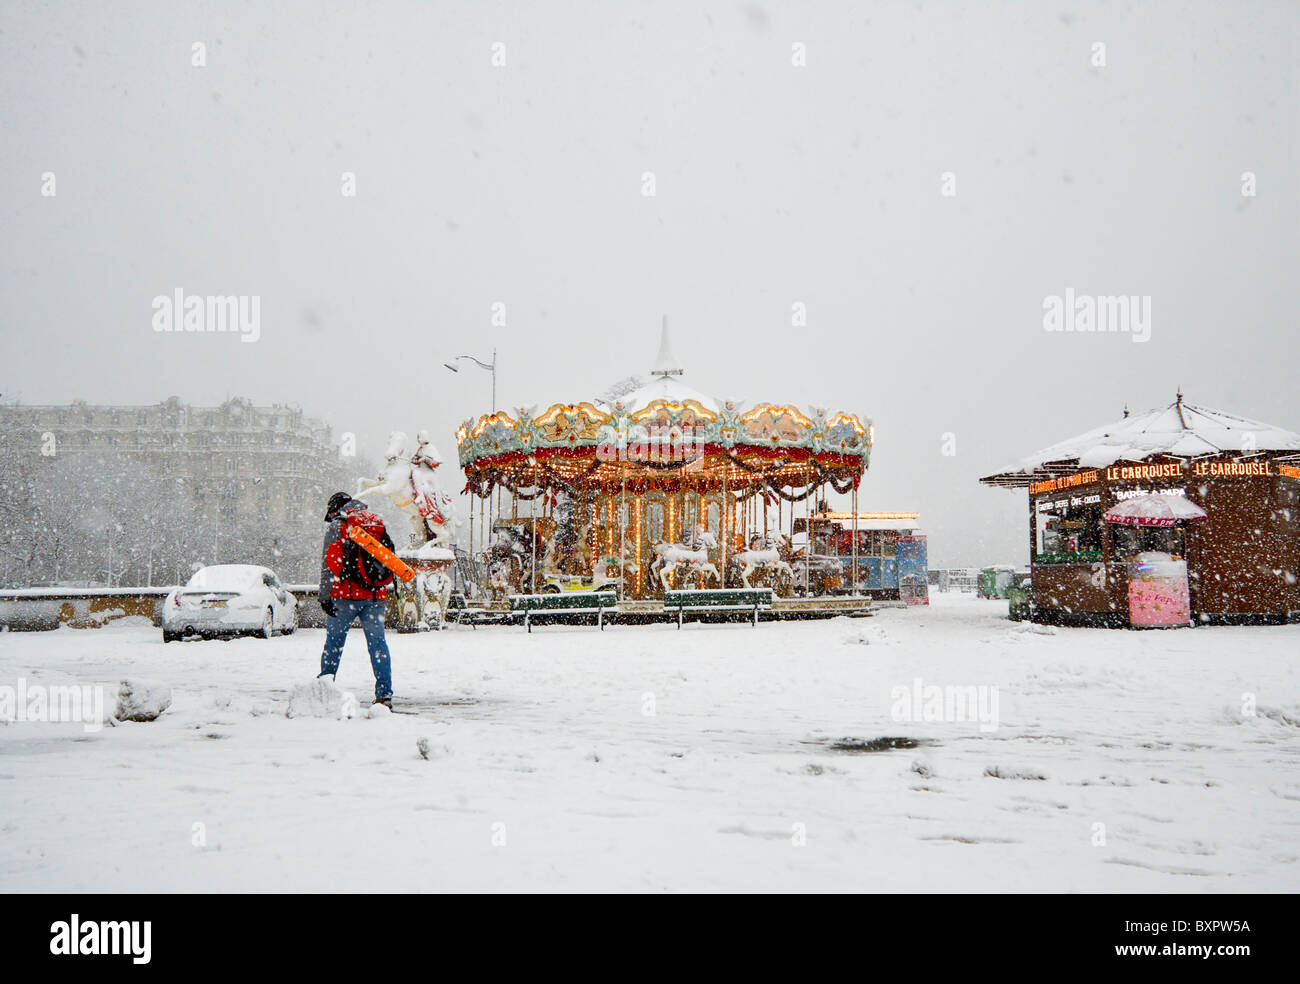 Snow covers tourist attractions and makes pavements and streets slippery during an early winter snowstorm in Paris, - Stock Image